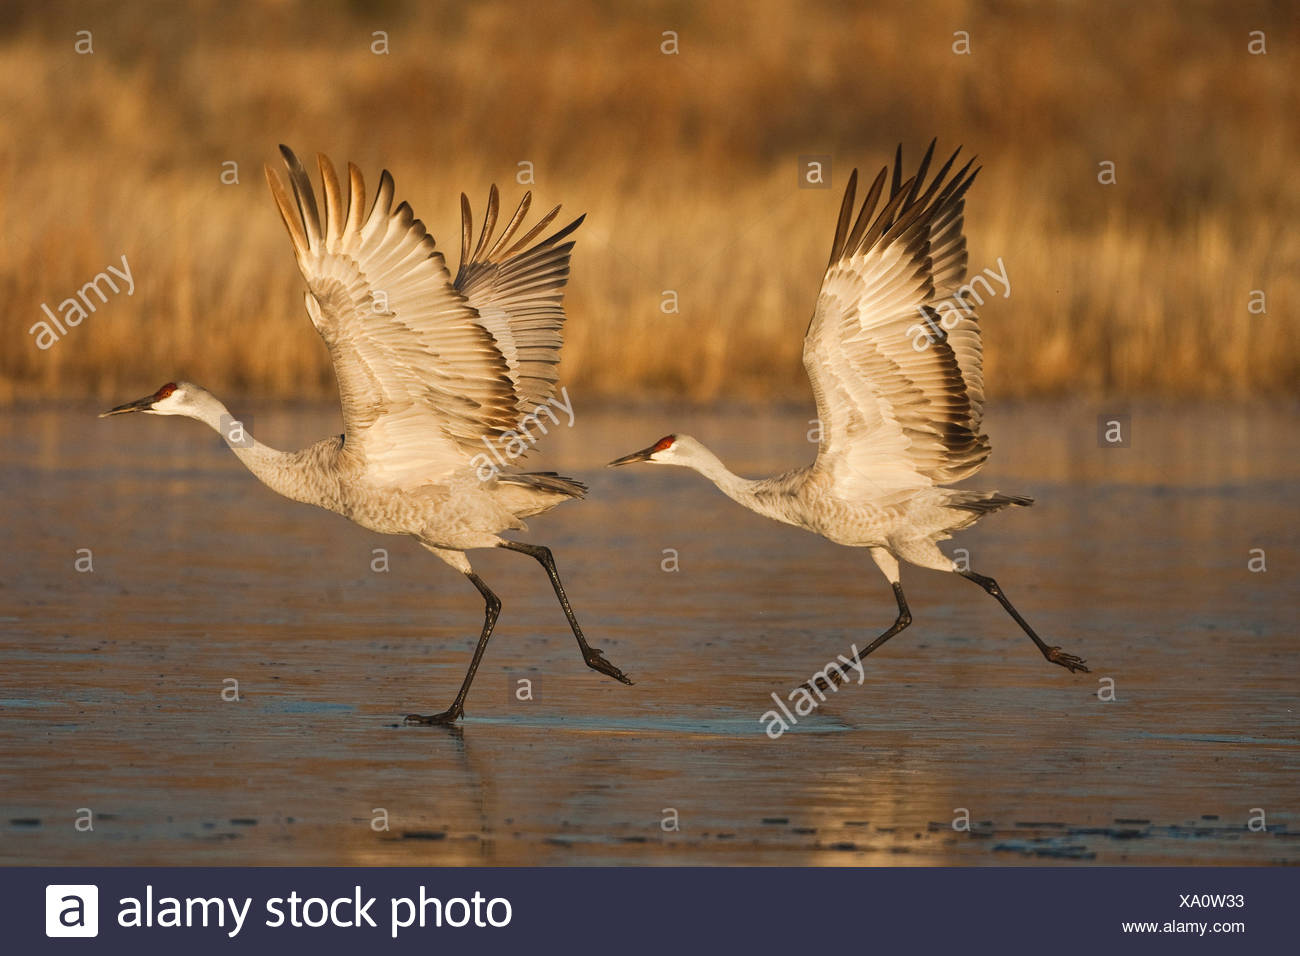 Sandhill Crane (Grus canadensis) adults taking off, Bosque del Apache National Wildlife Refuge , New Mexico, USA - Stock Image